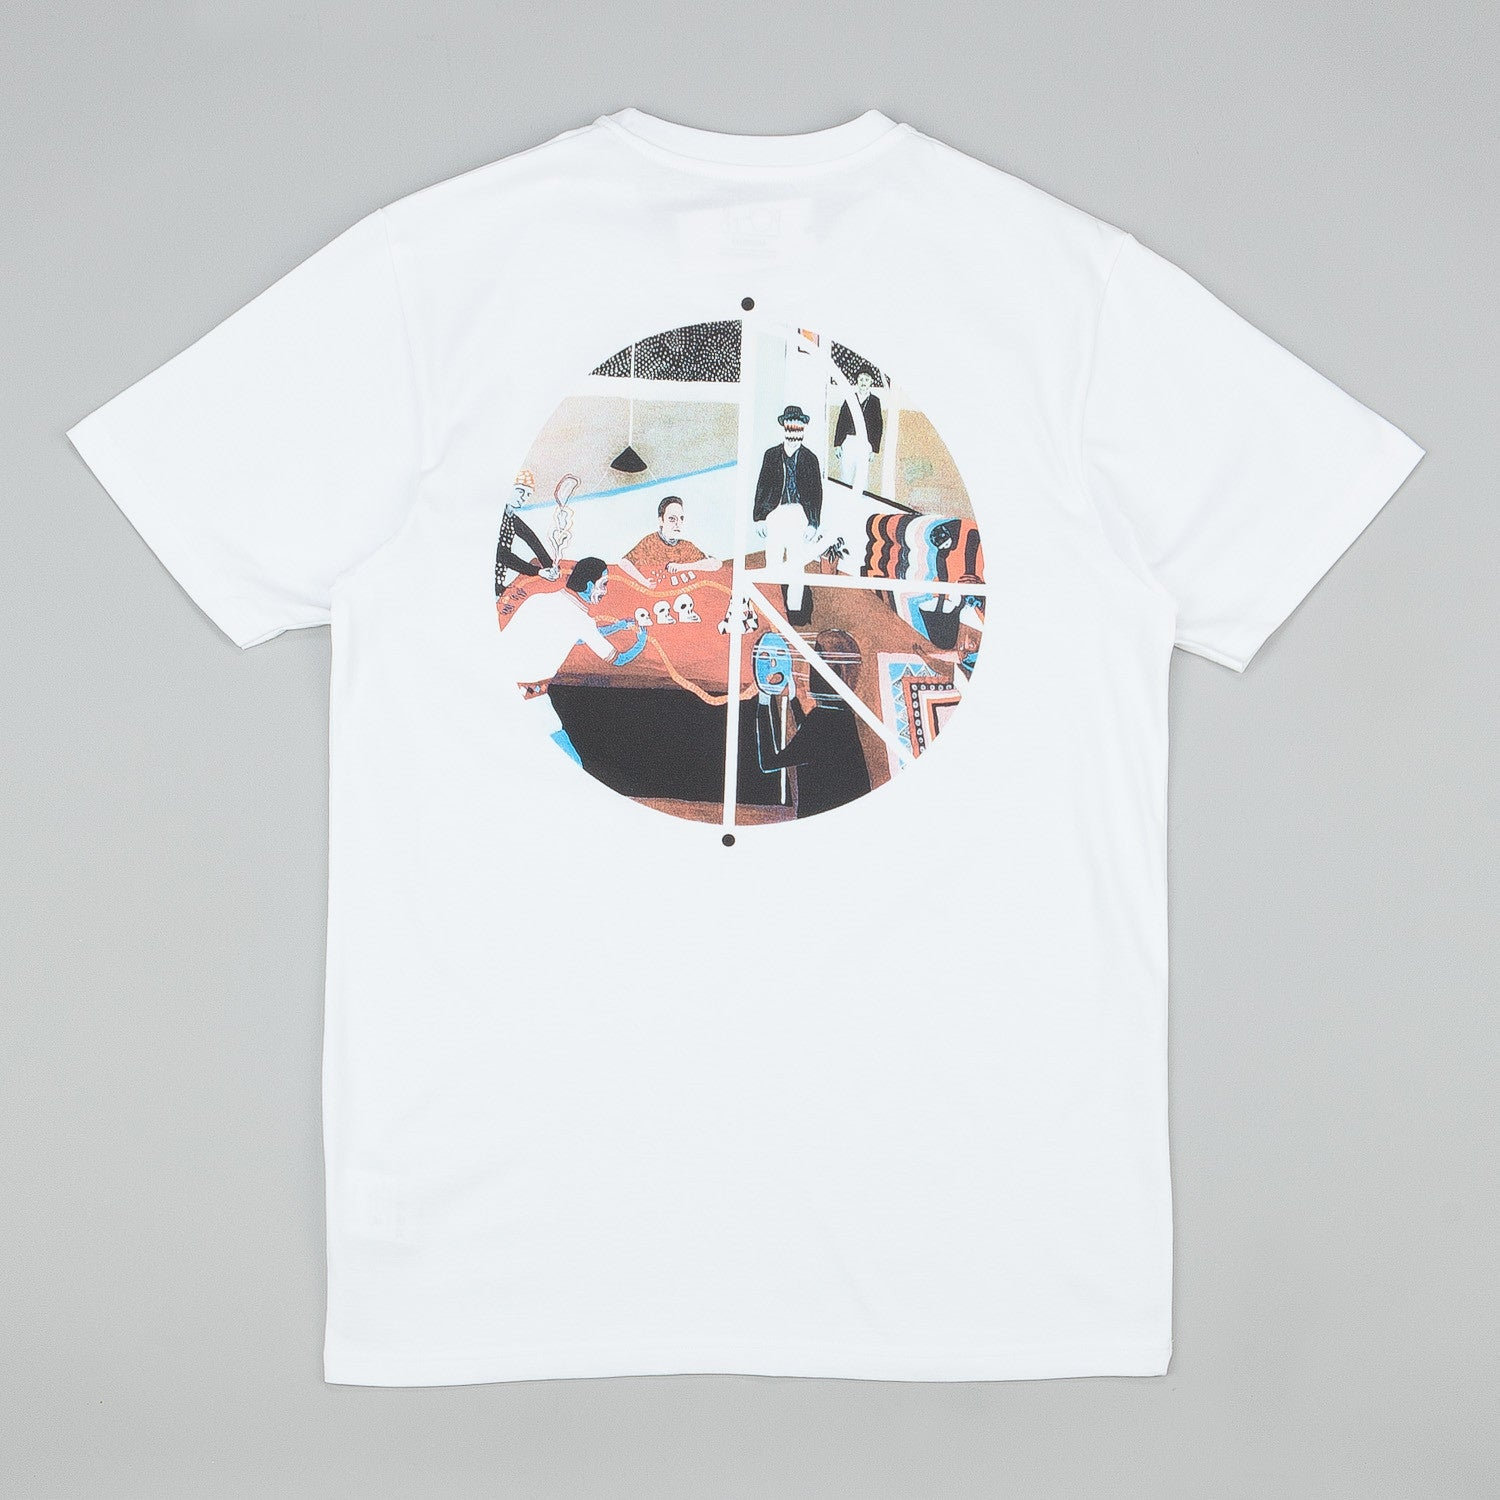 Polar X AMTK Inside Outside T-Shirt - White